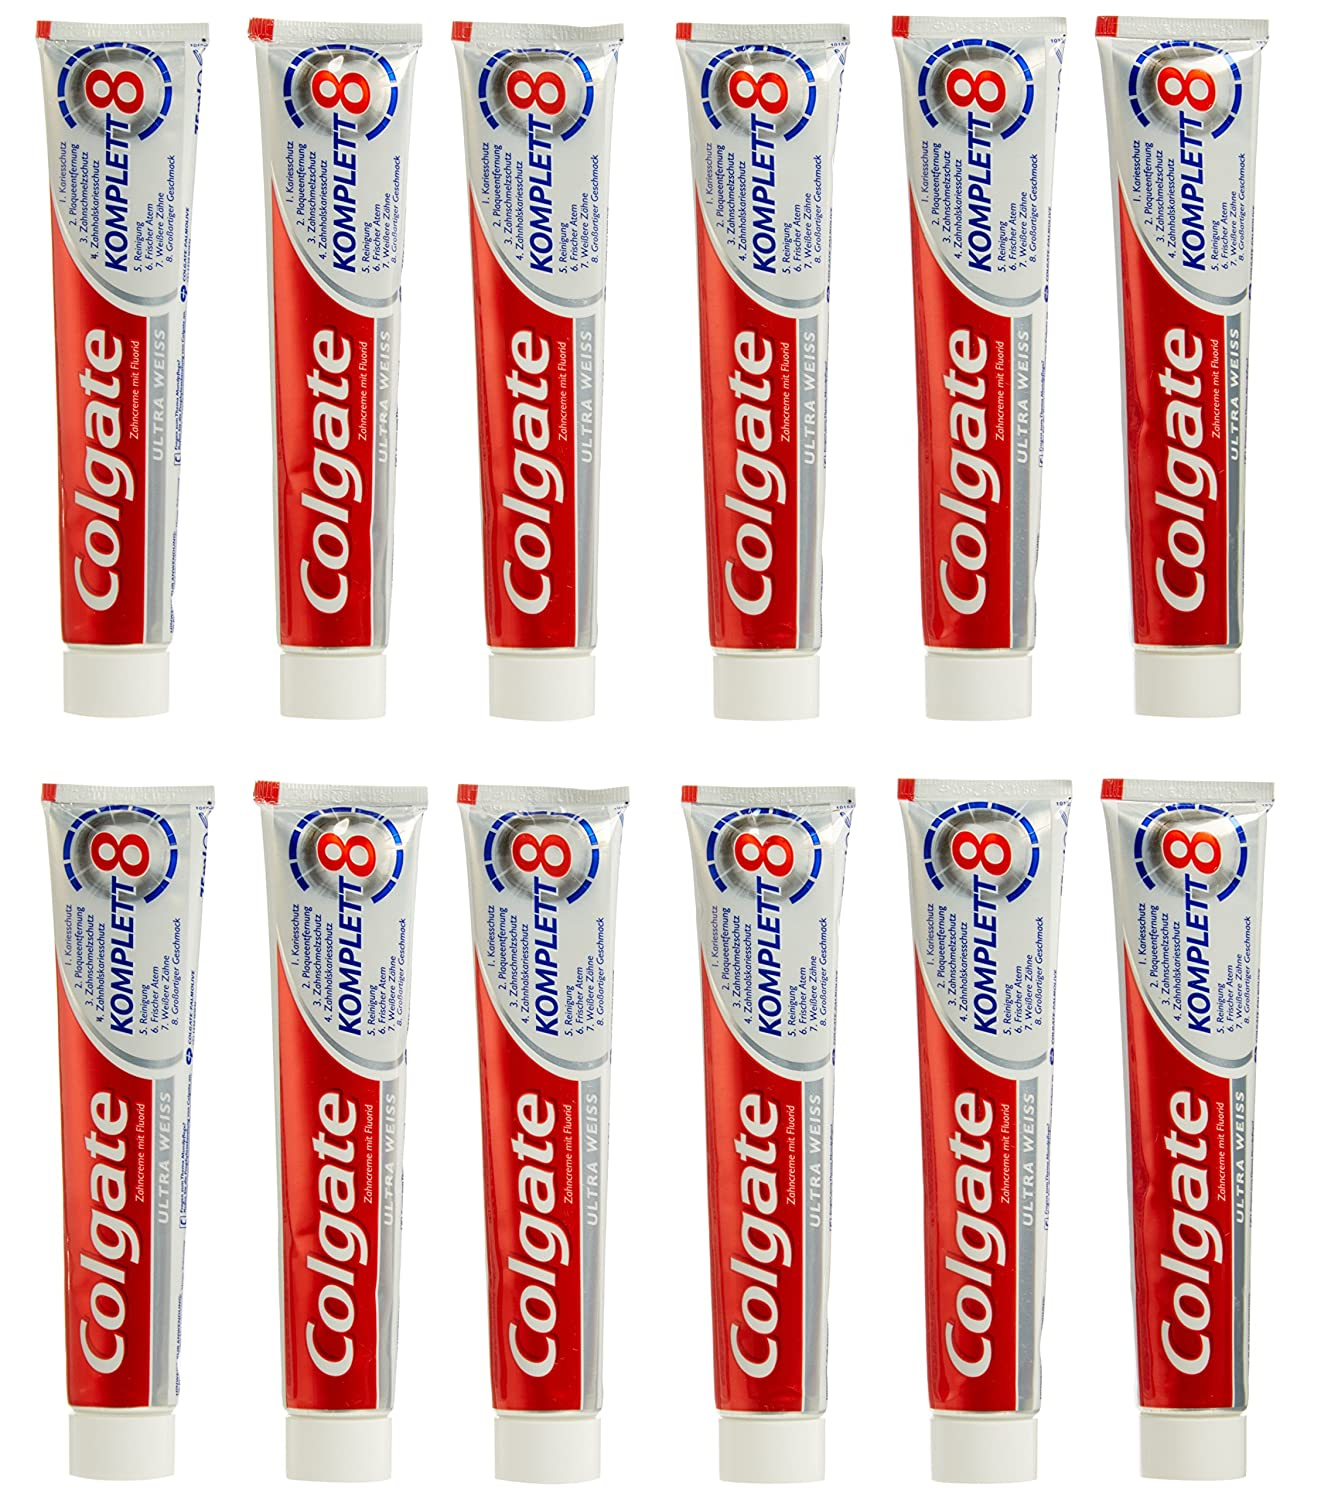 Colgate Zahnpasta amazon